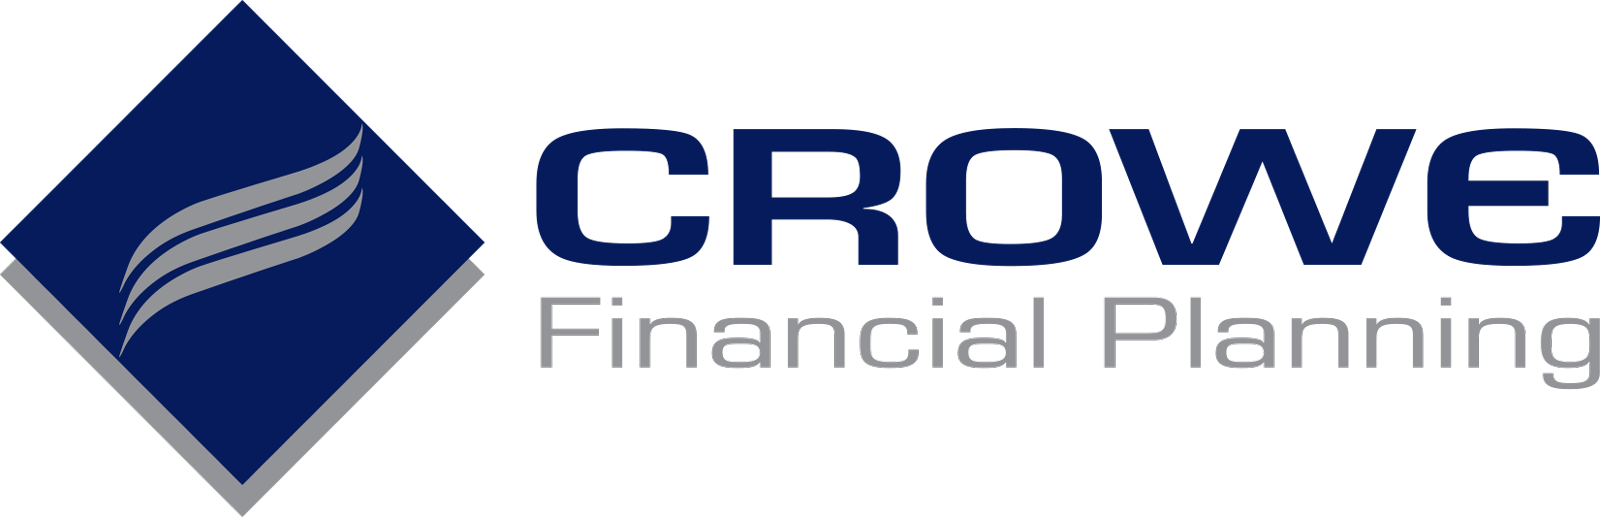 Crowe Financial Planning